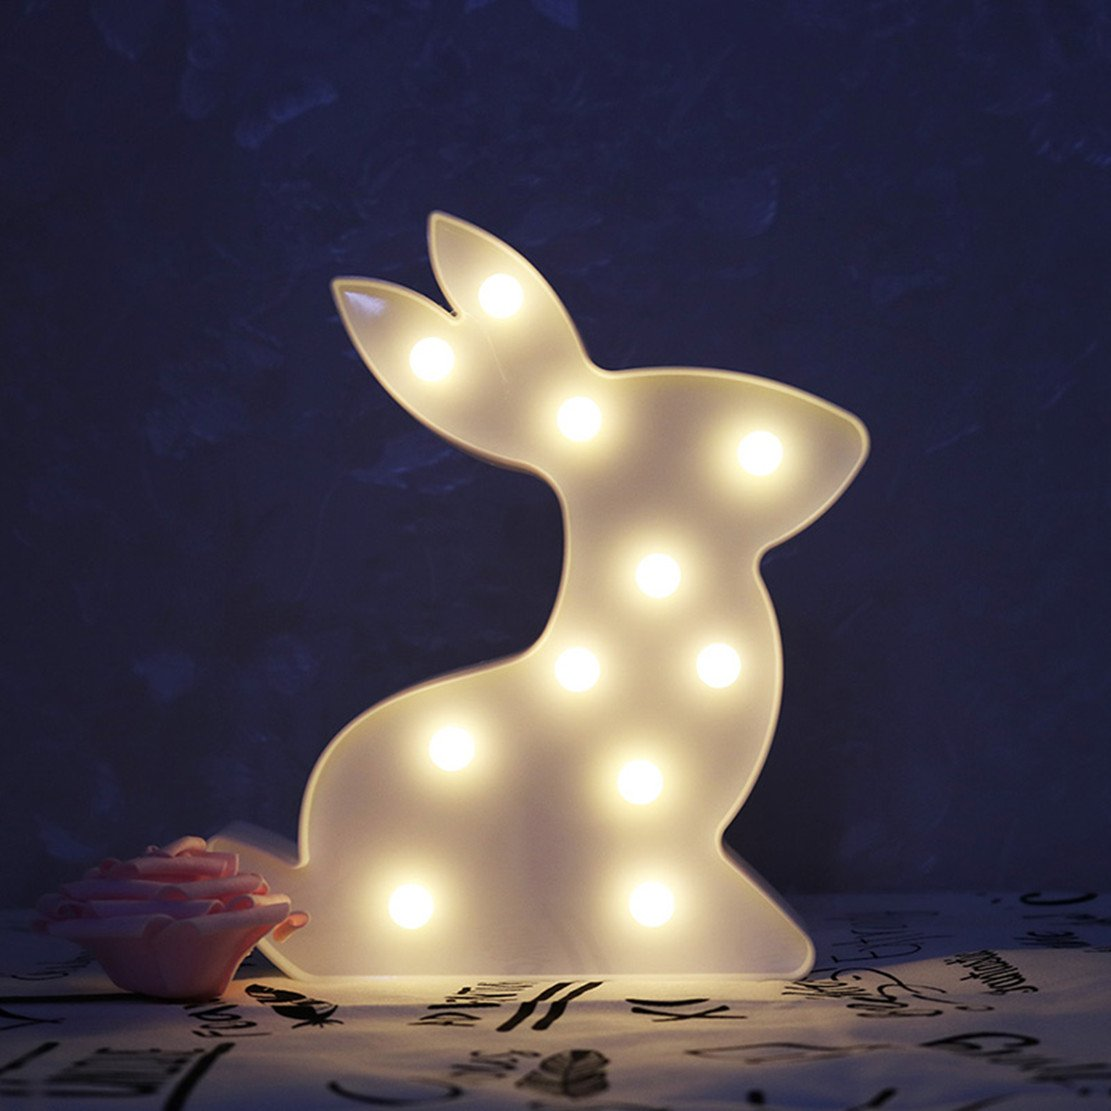 Easter Gift,Decorative Bunny Sign Light,LED Rabbit Shaped Sign-Art Marquee Signs-Nursery Night Lamp Gift-Wall Decor Lighs for Birthday Party,Kids Room, Living Room(White)